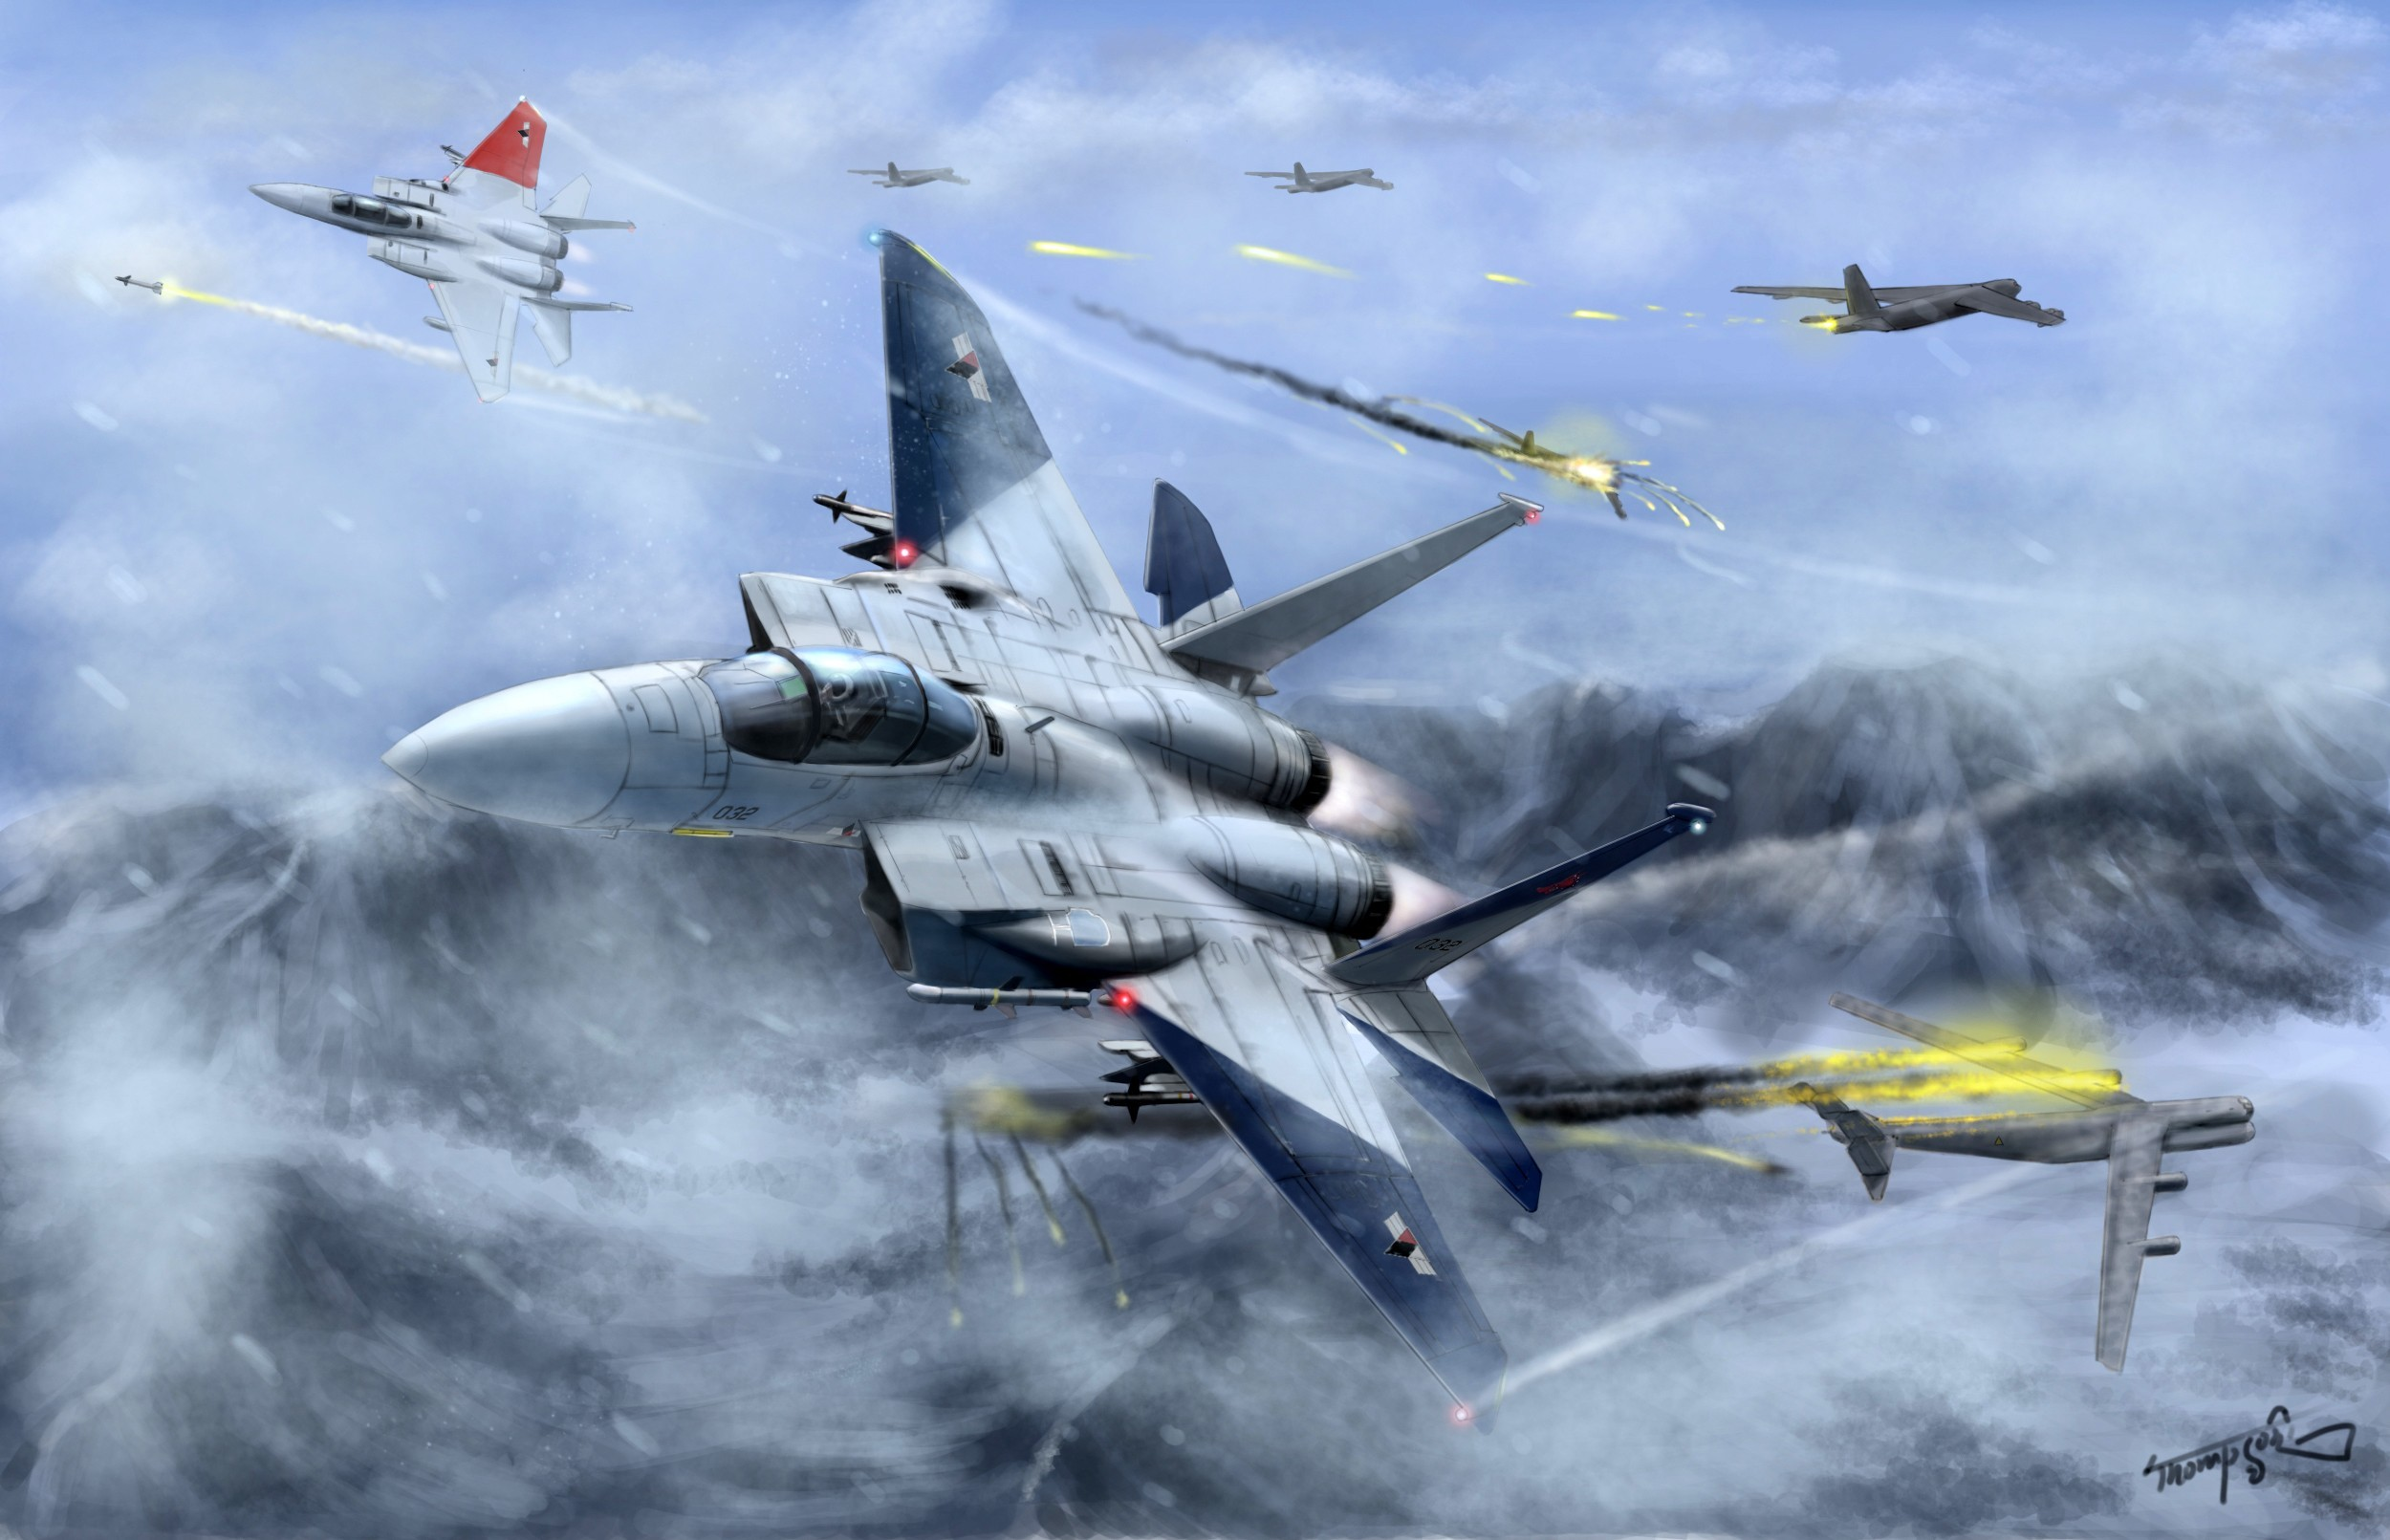 Res: 2500x1611, Ace Combat HD Wallpaper | Background Image |  | ID:174355 -  Wallpaper Abyss